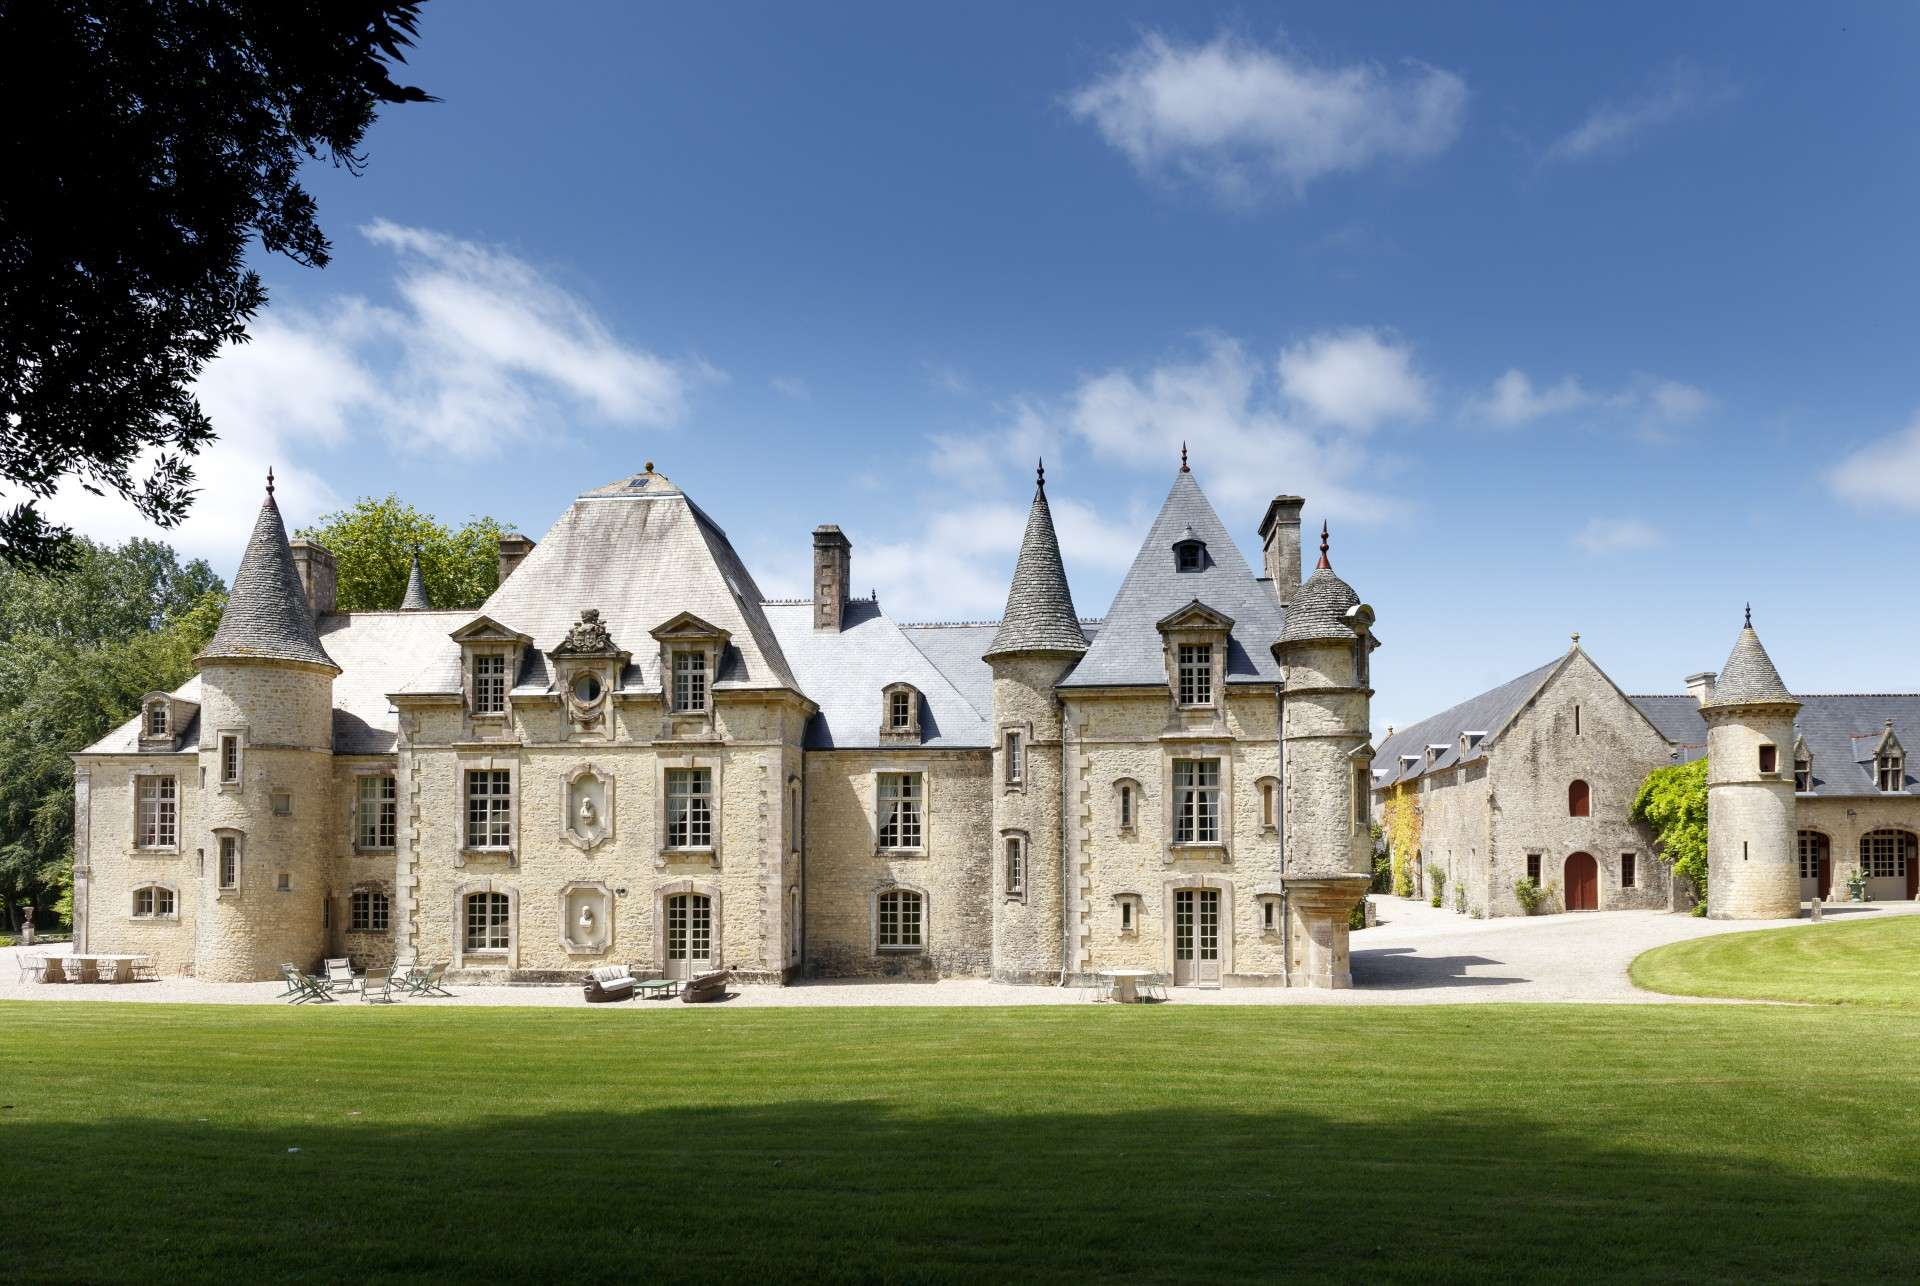 Luxury vacation rentals europe - France - Normandy - Cherbourg - Chateau Yvetot - Image 1/31